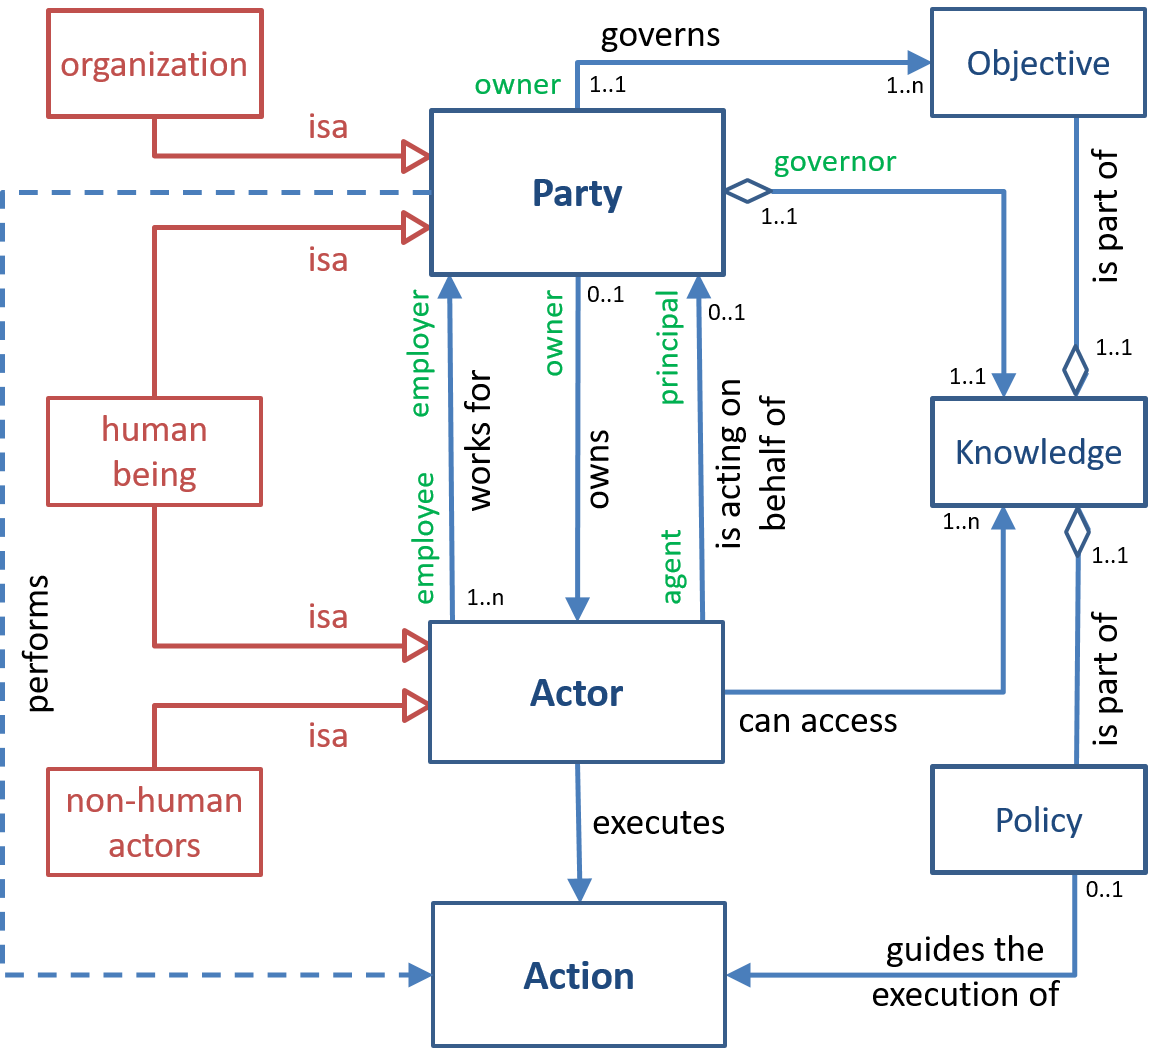 static/images/patterns/pattern-party-actor-action.png